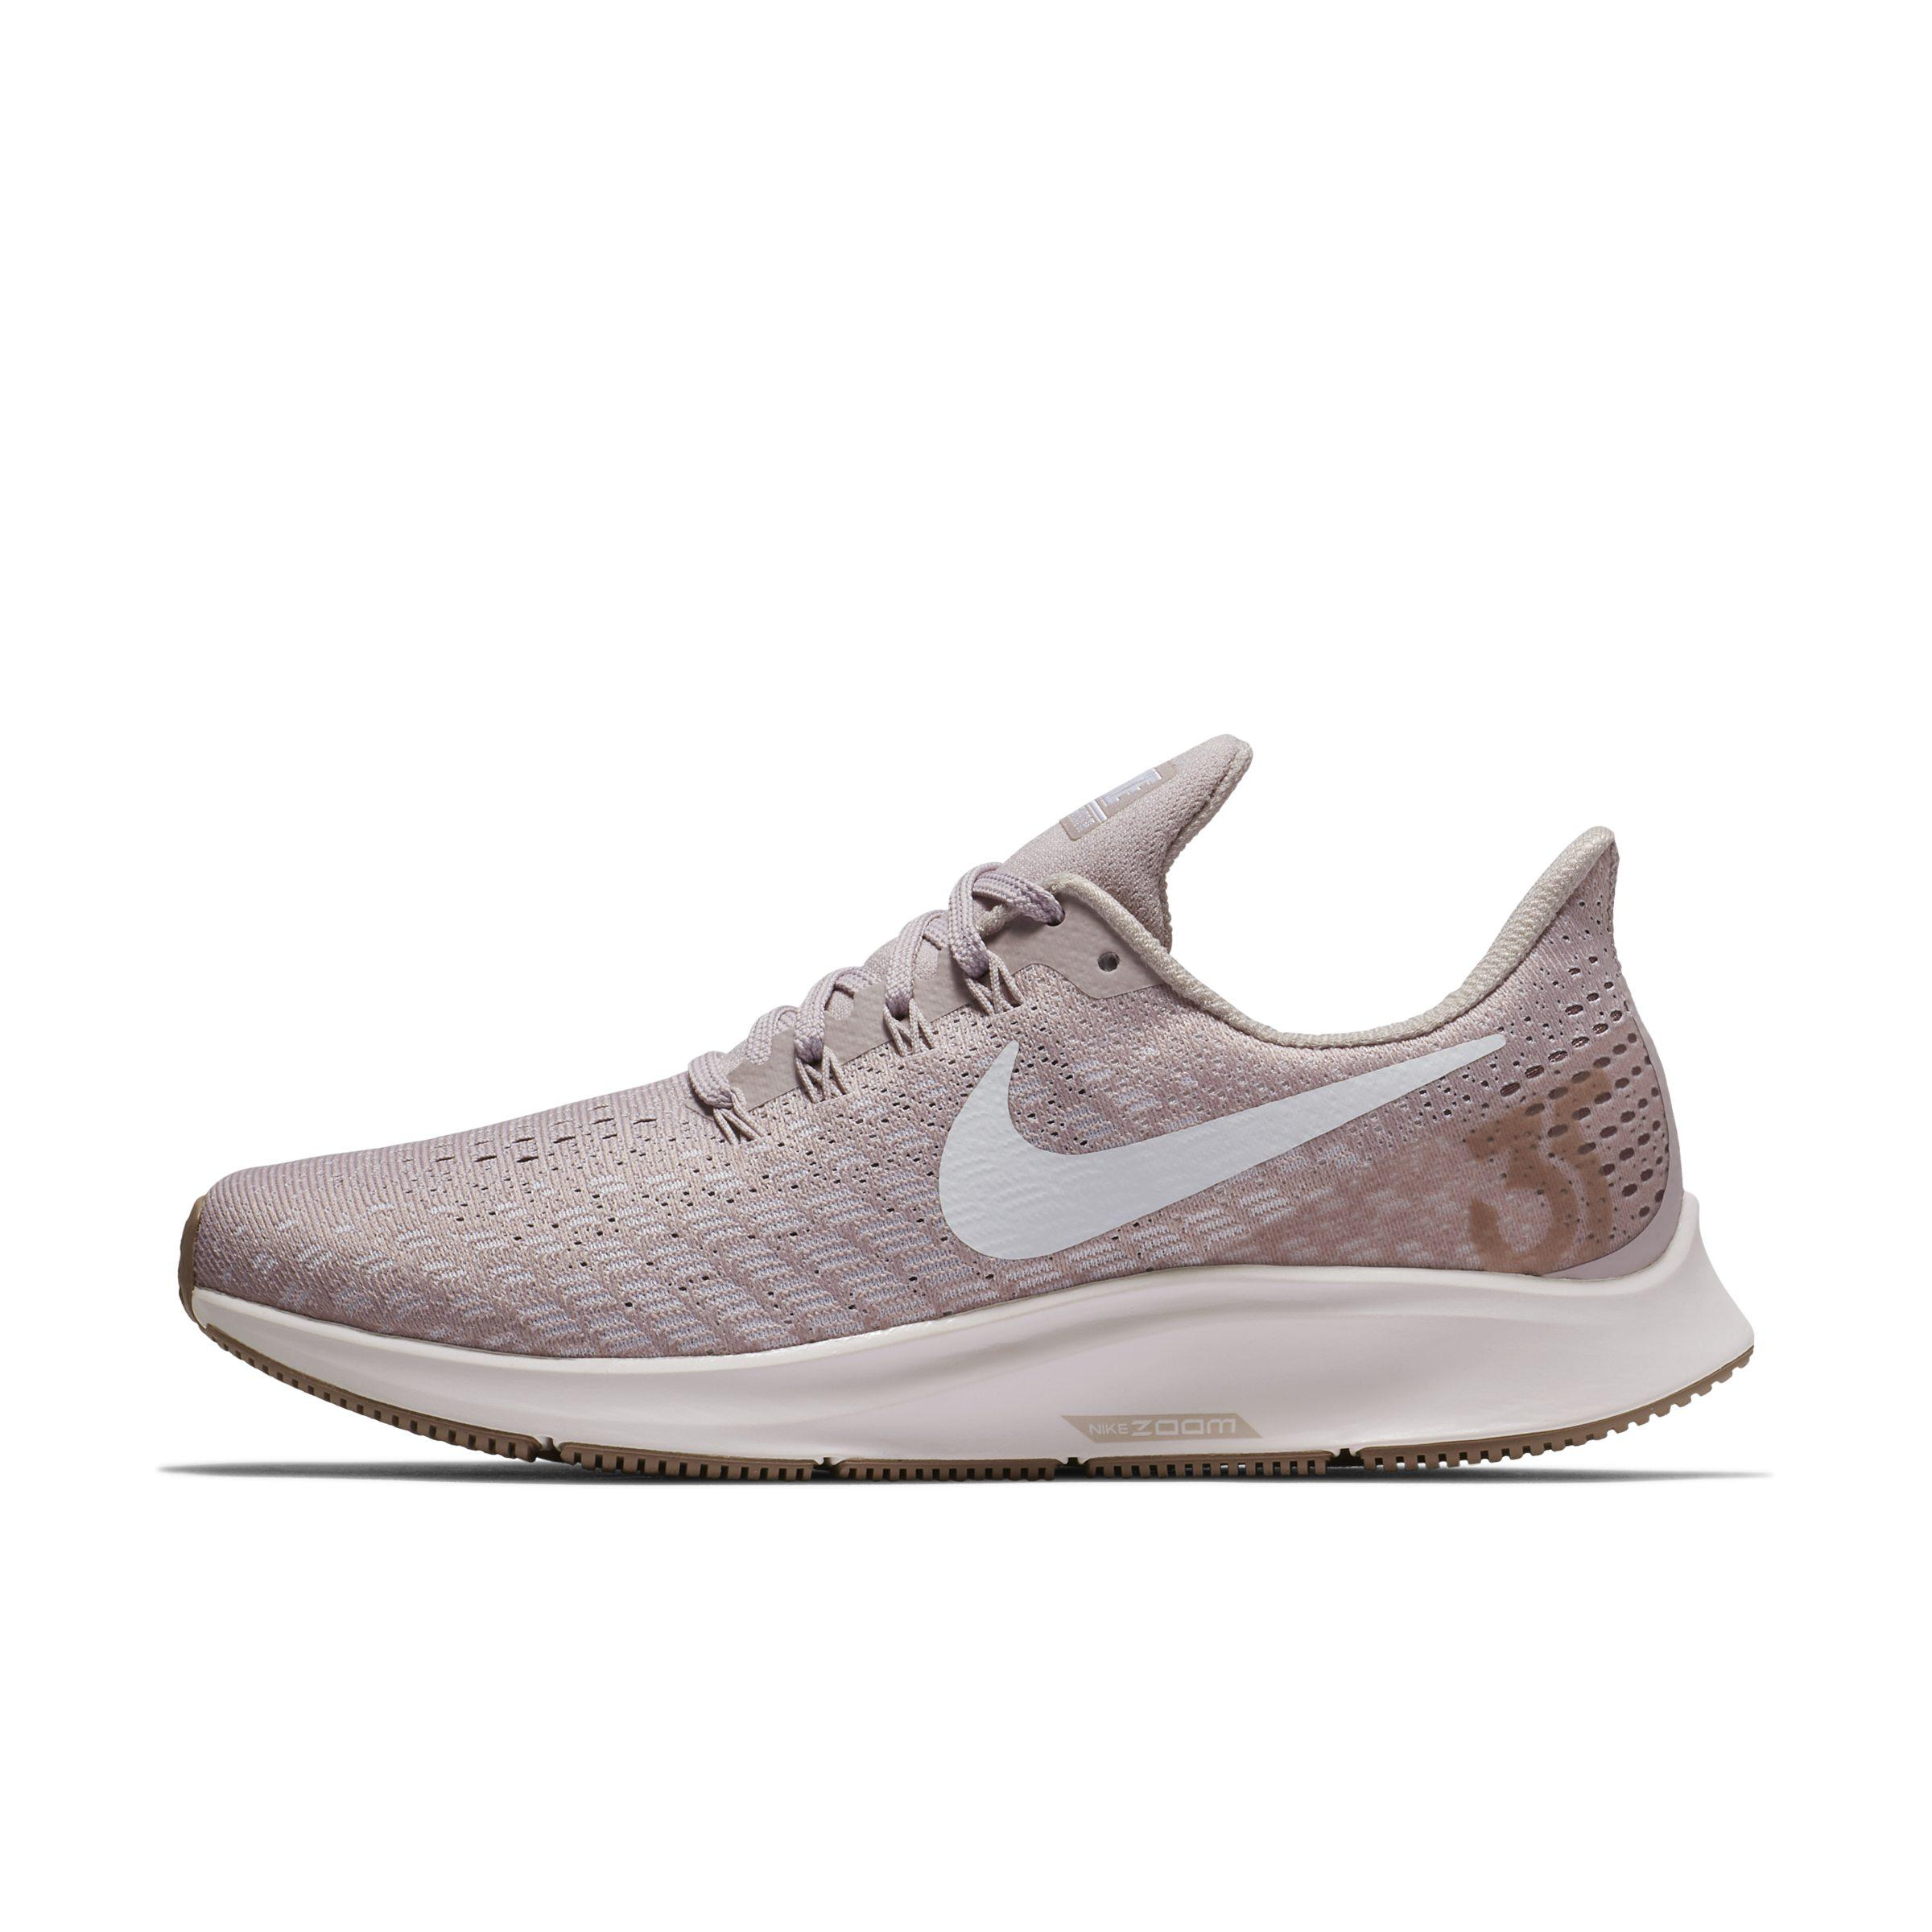 02240d6bc81b Nike Air Zoom Pegasus 35 Running Shoe in Pink - Lyst